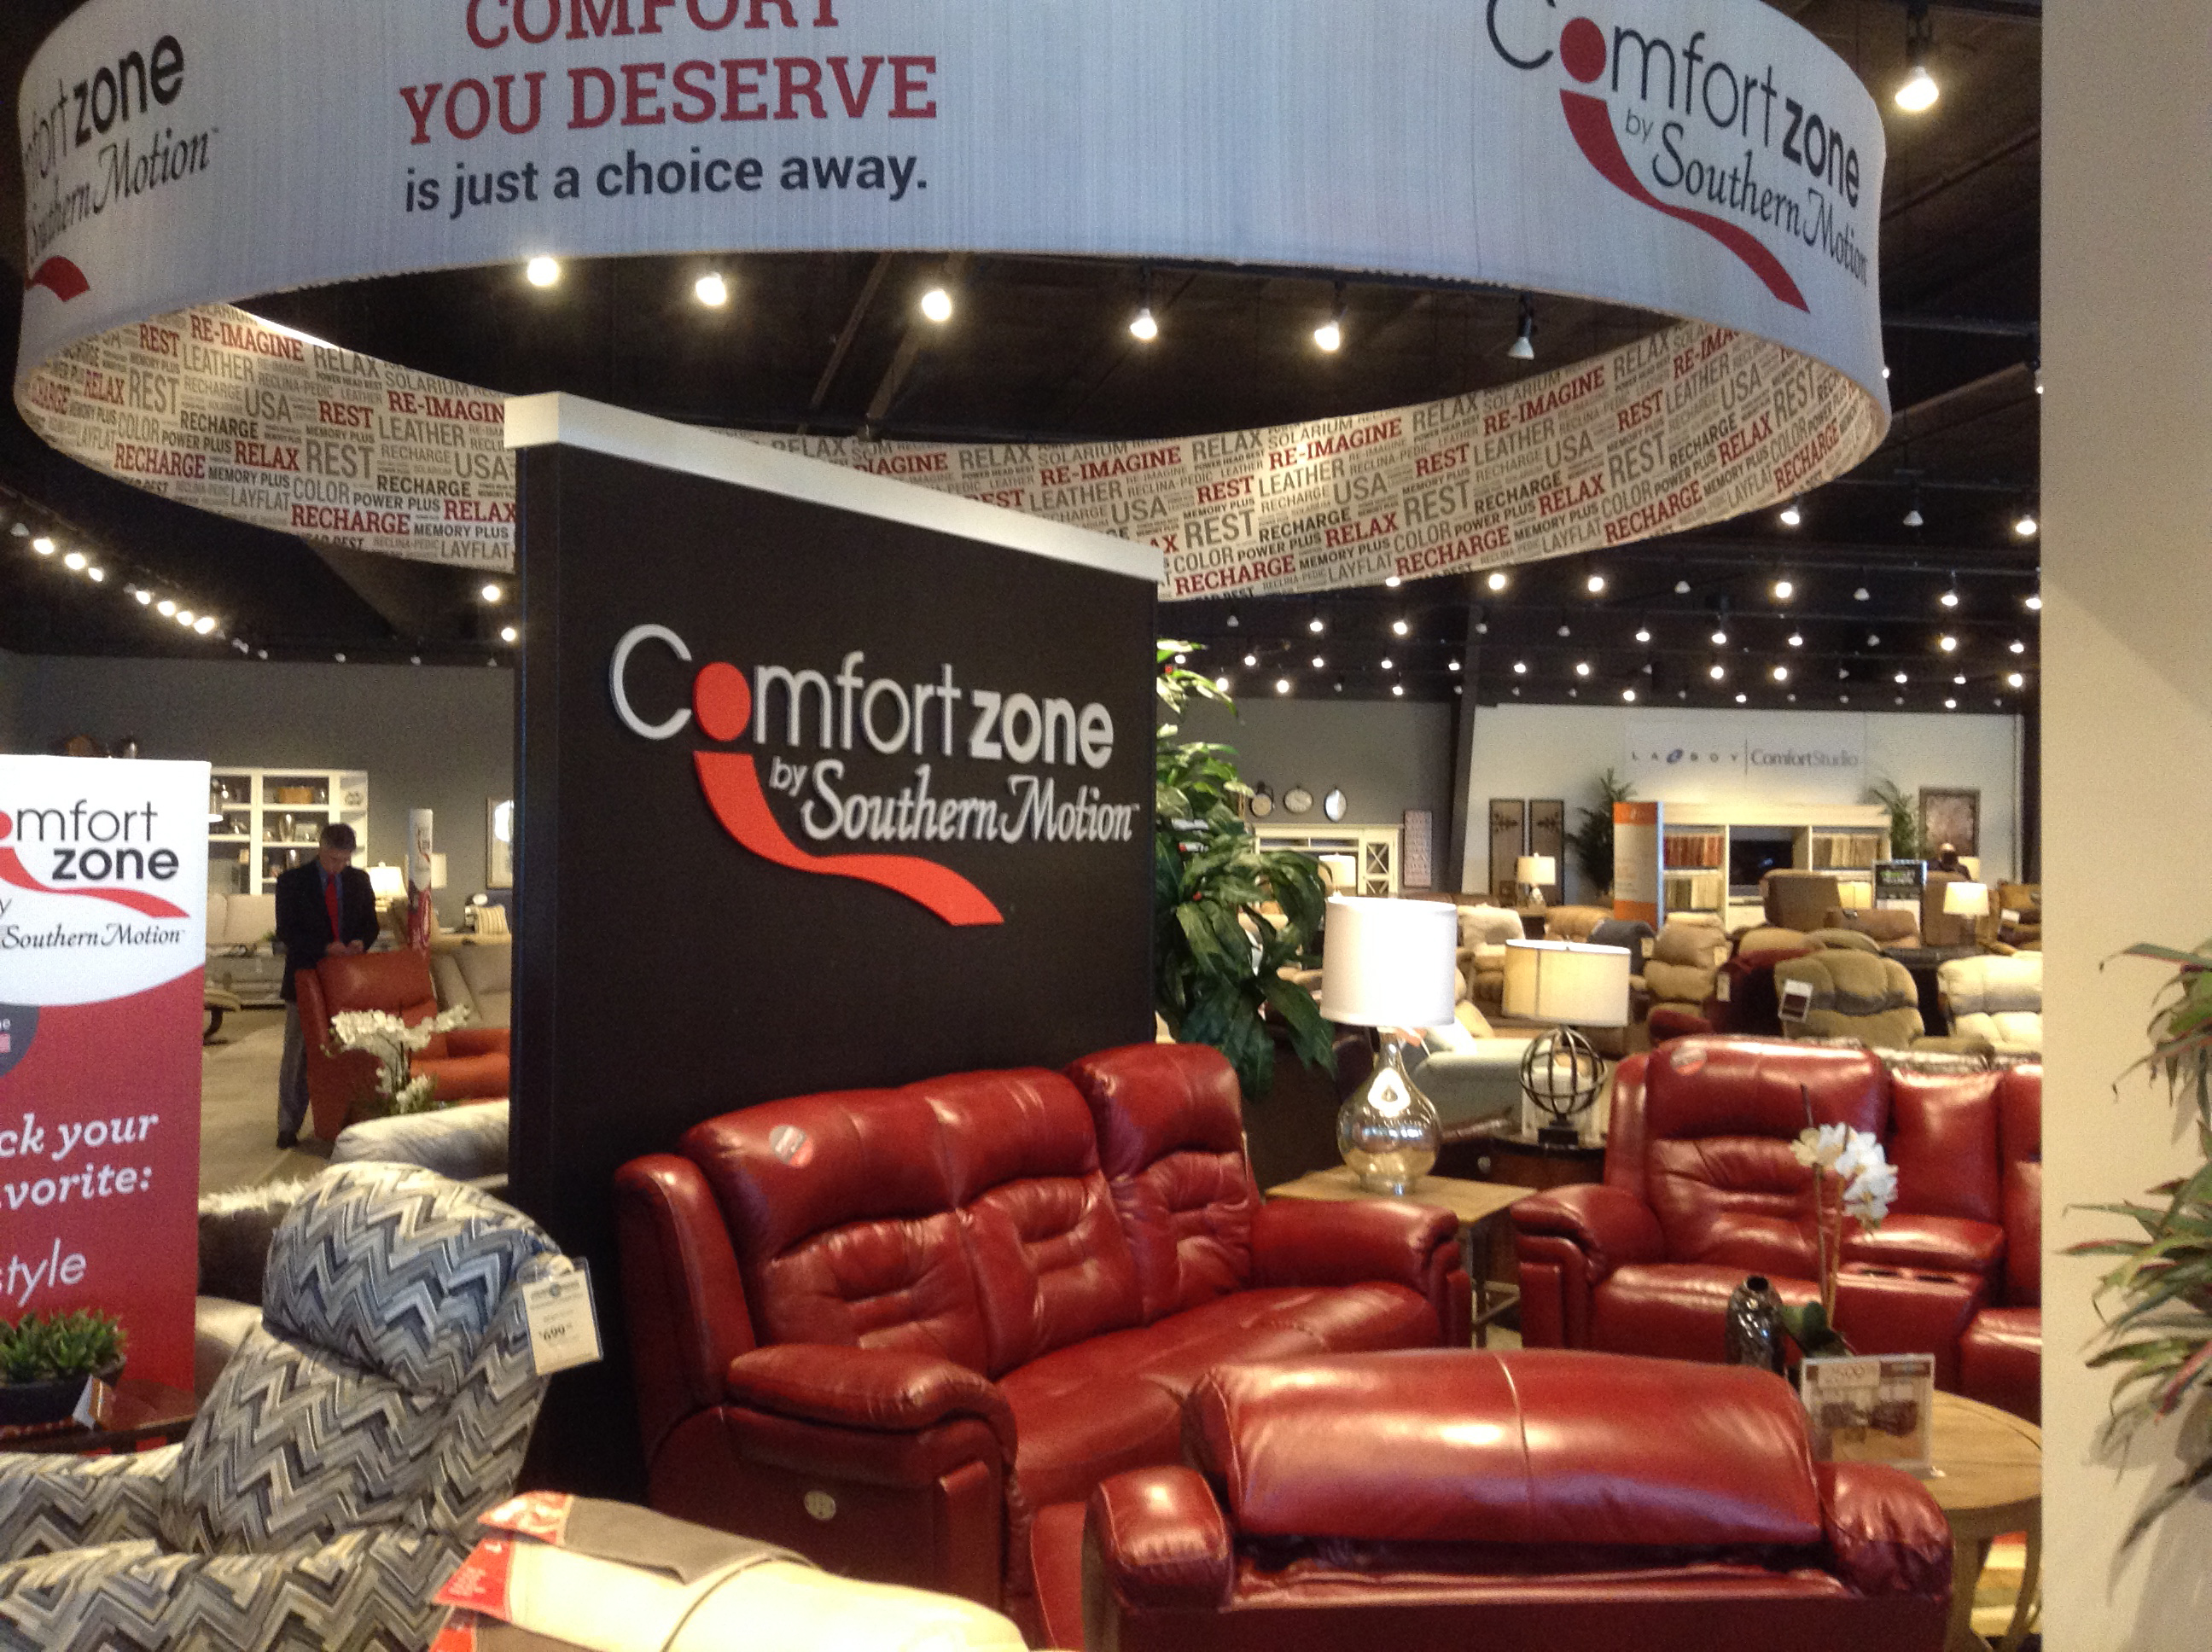 It's a major motion store. The important upholstery category gets prime positioning near the entrance with displays of Southern Motion (shown), La-Z-Boy, Flexsteel and more.